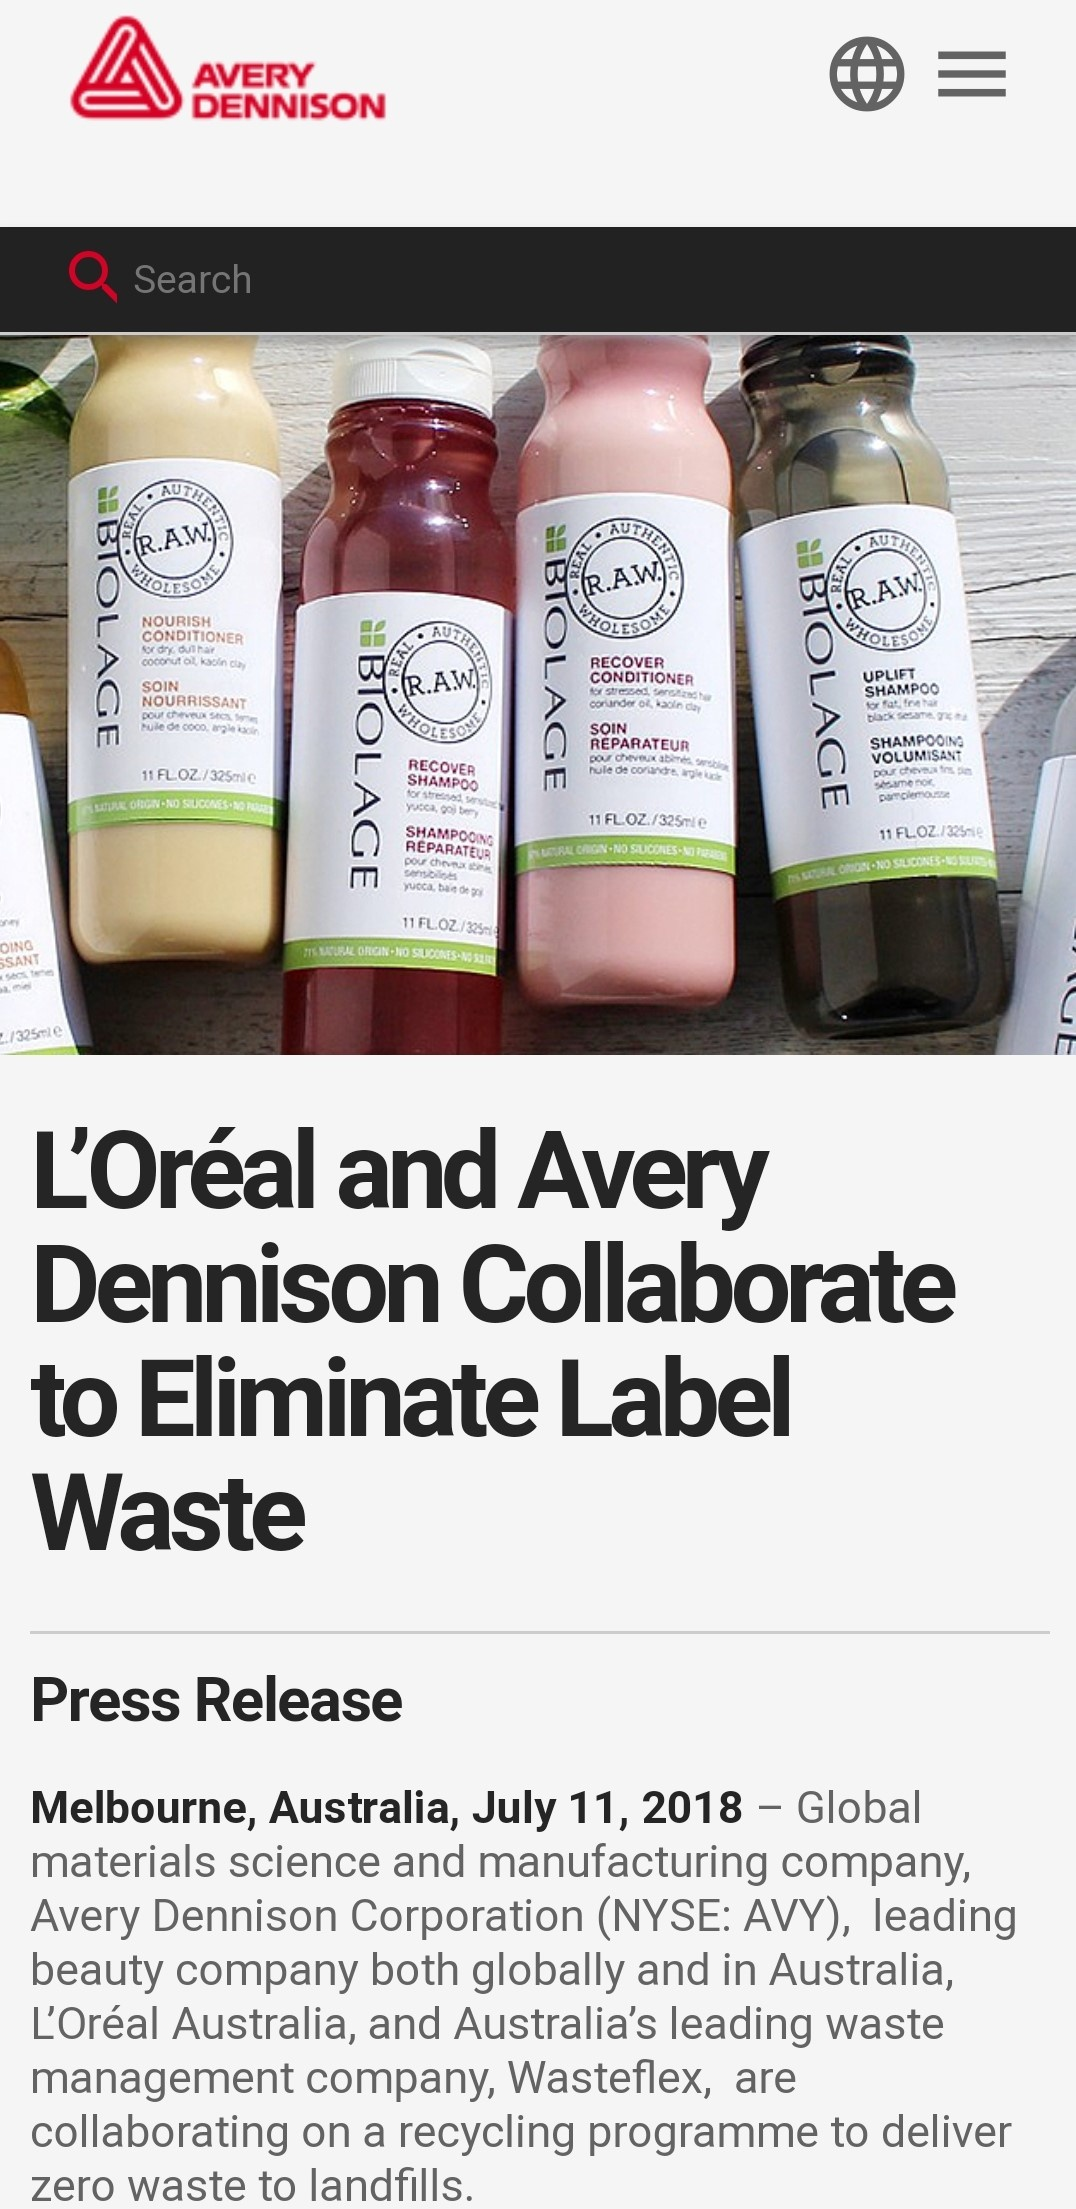 Vermilion Pinstripes reporting on Avery Dennison LOreal and Wasteflex on zero waste diverting liner waste from landfills recycling program